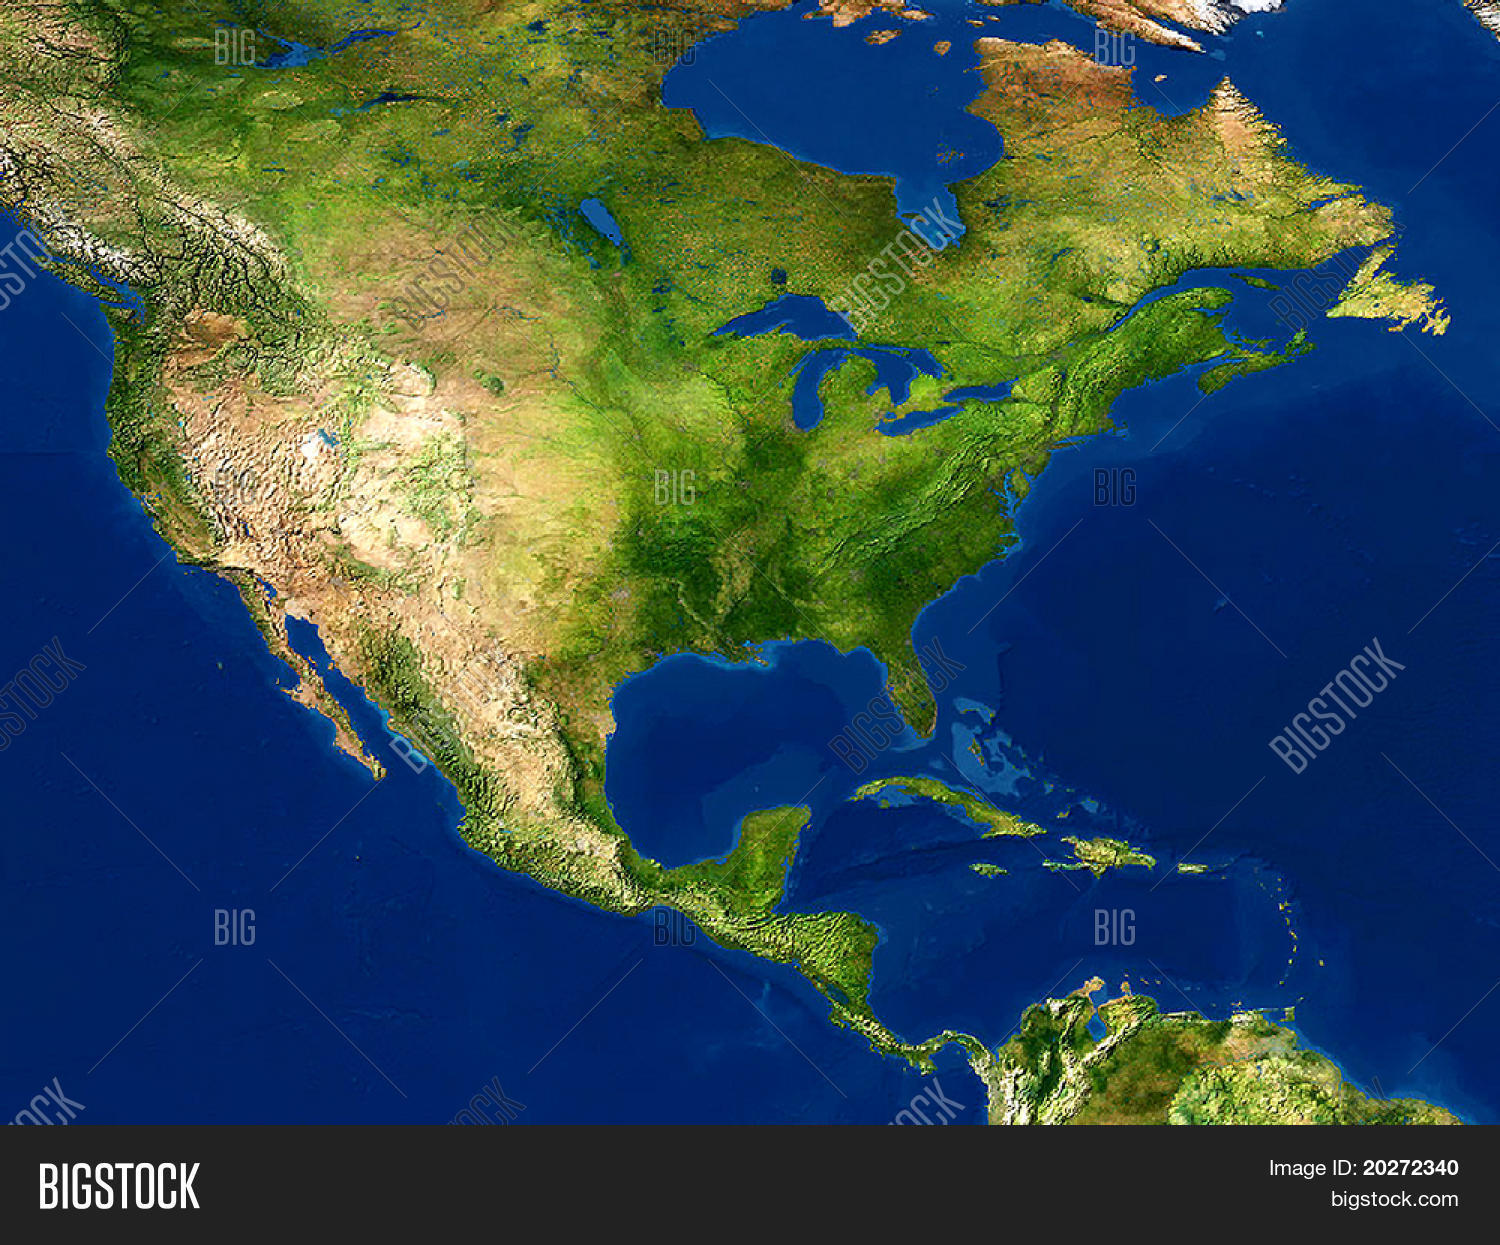 Real Looking Earth Map Image & Photo (Free Trial) | Bigstock